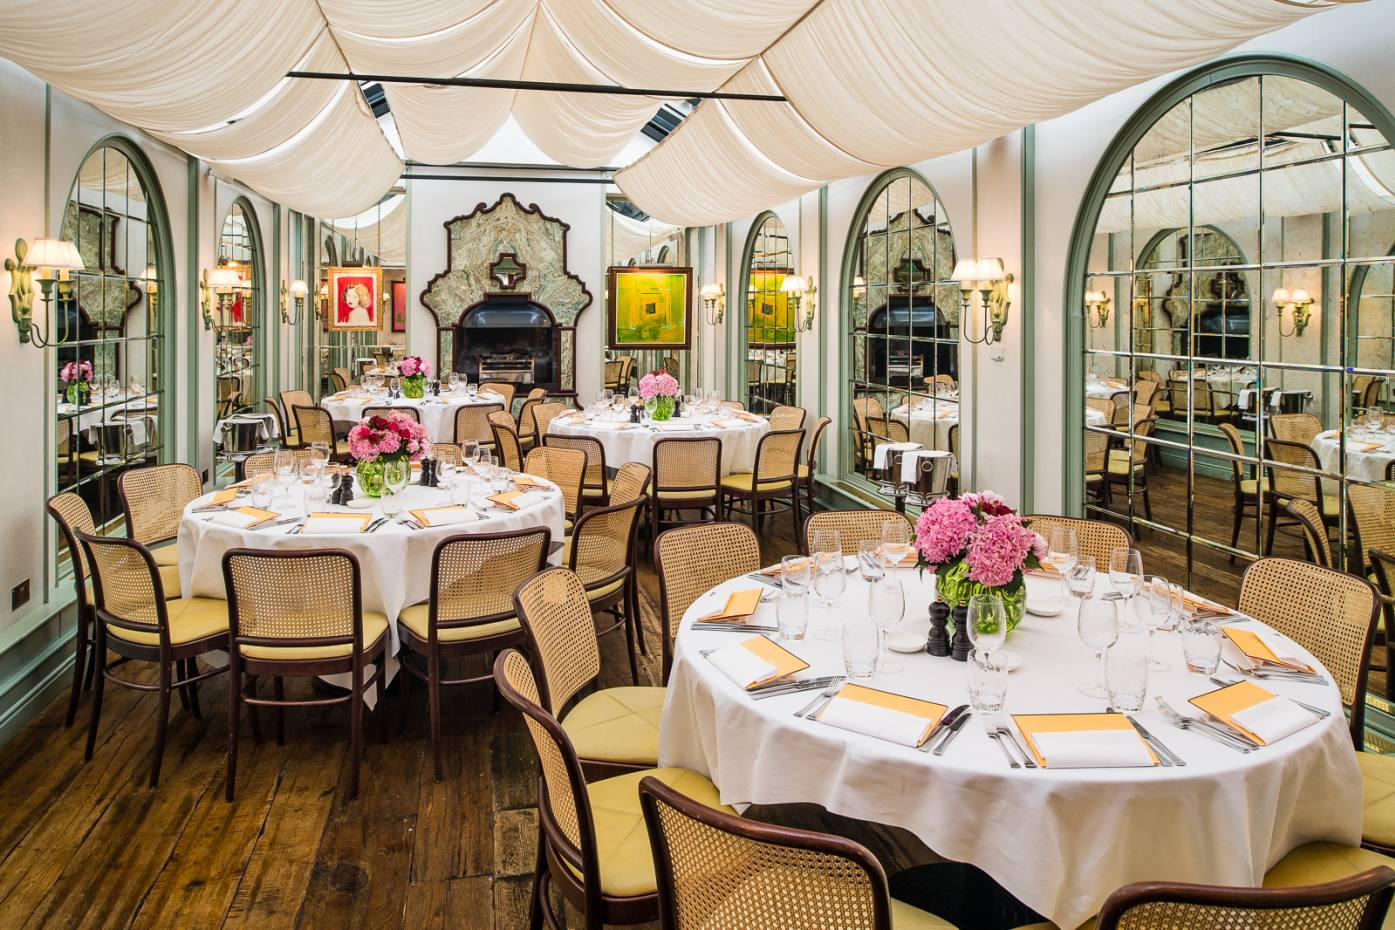 Over a three-course dinner at Daphne's, guests will hear first-hand from flat racing's best-known figures